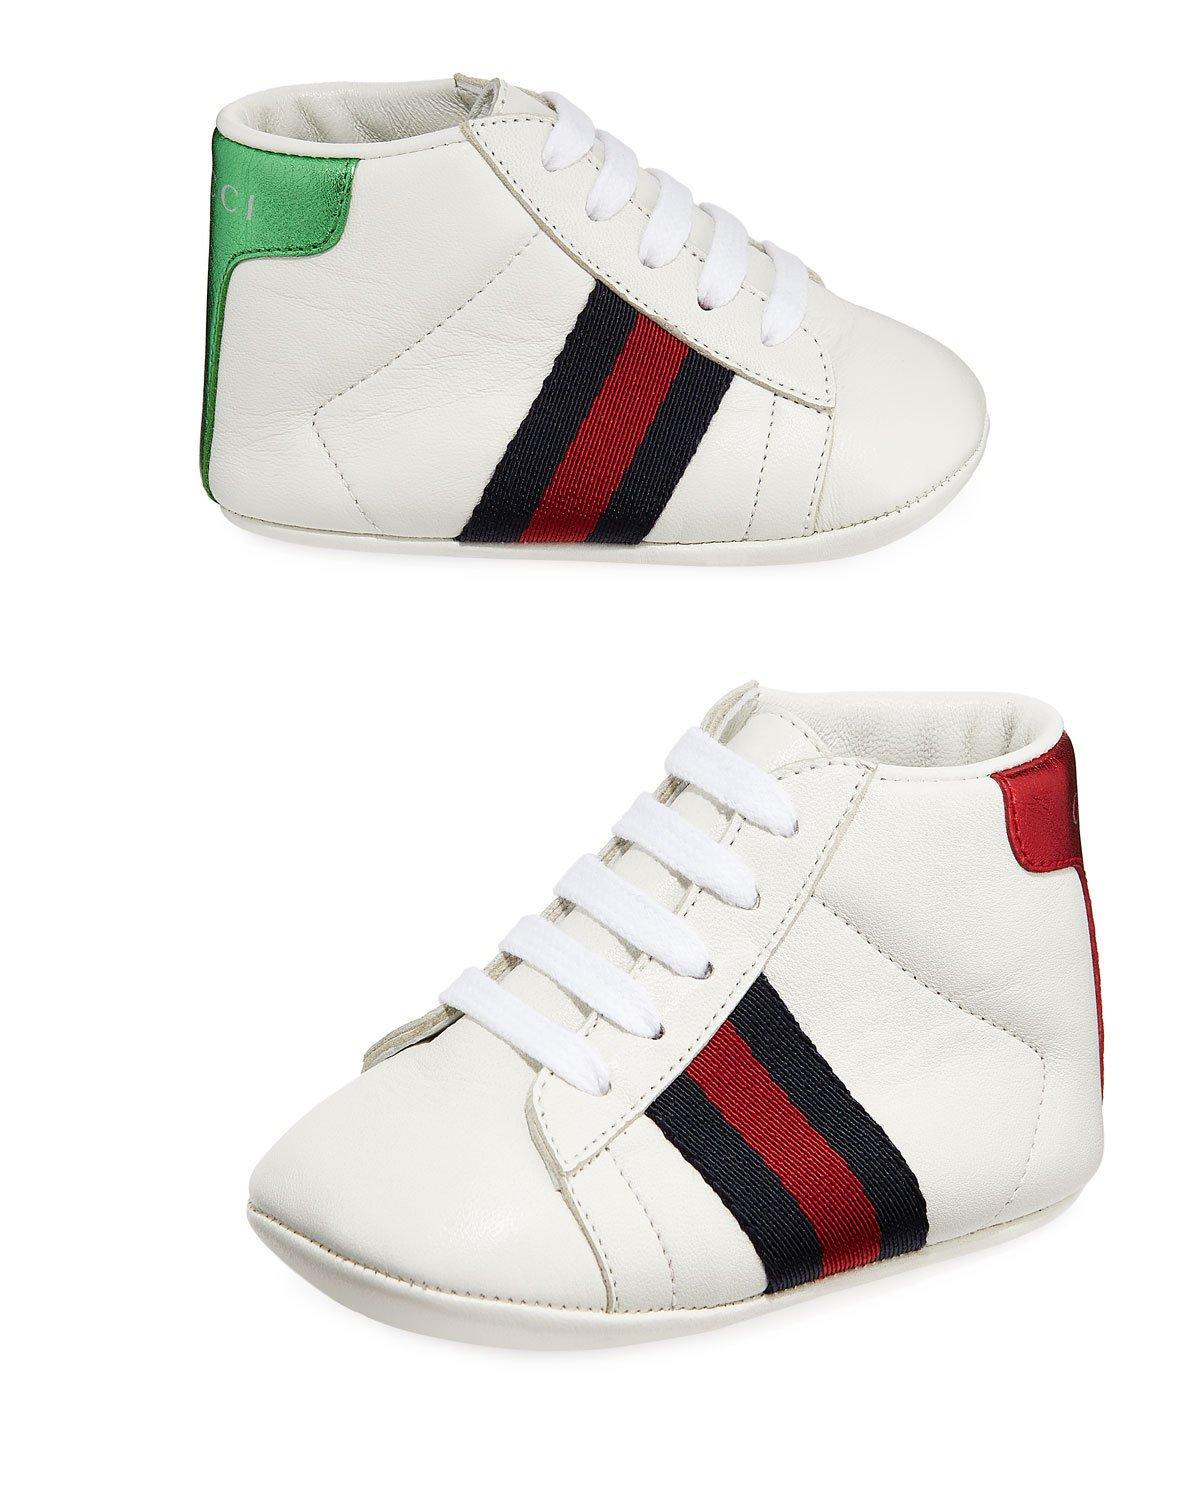 a931efbc240c3 Gucci New Ace Web-Trim Leather Sneakers